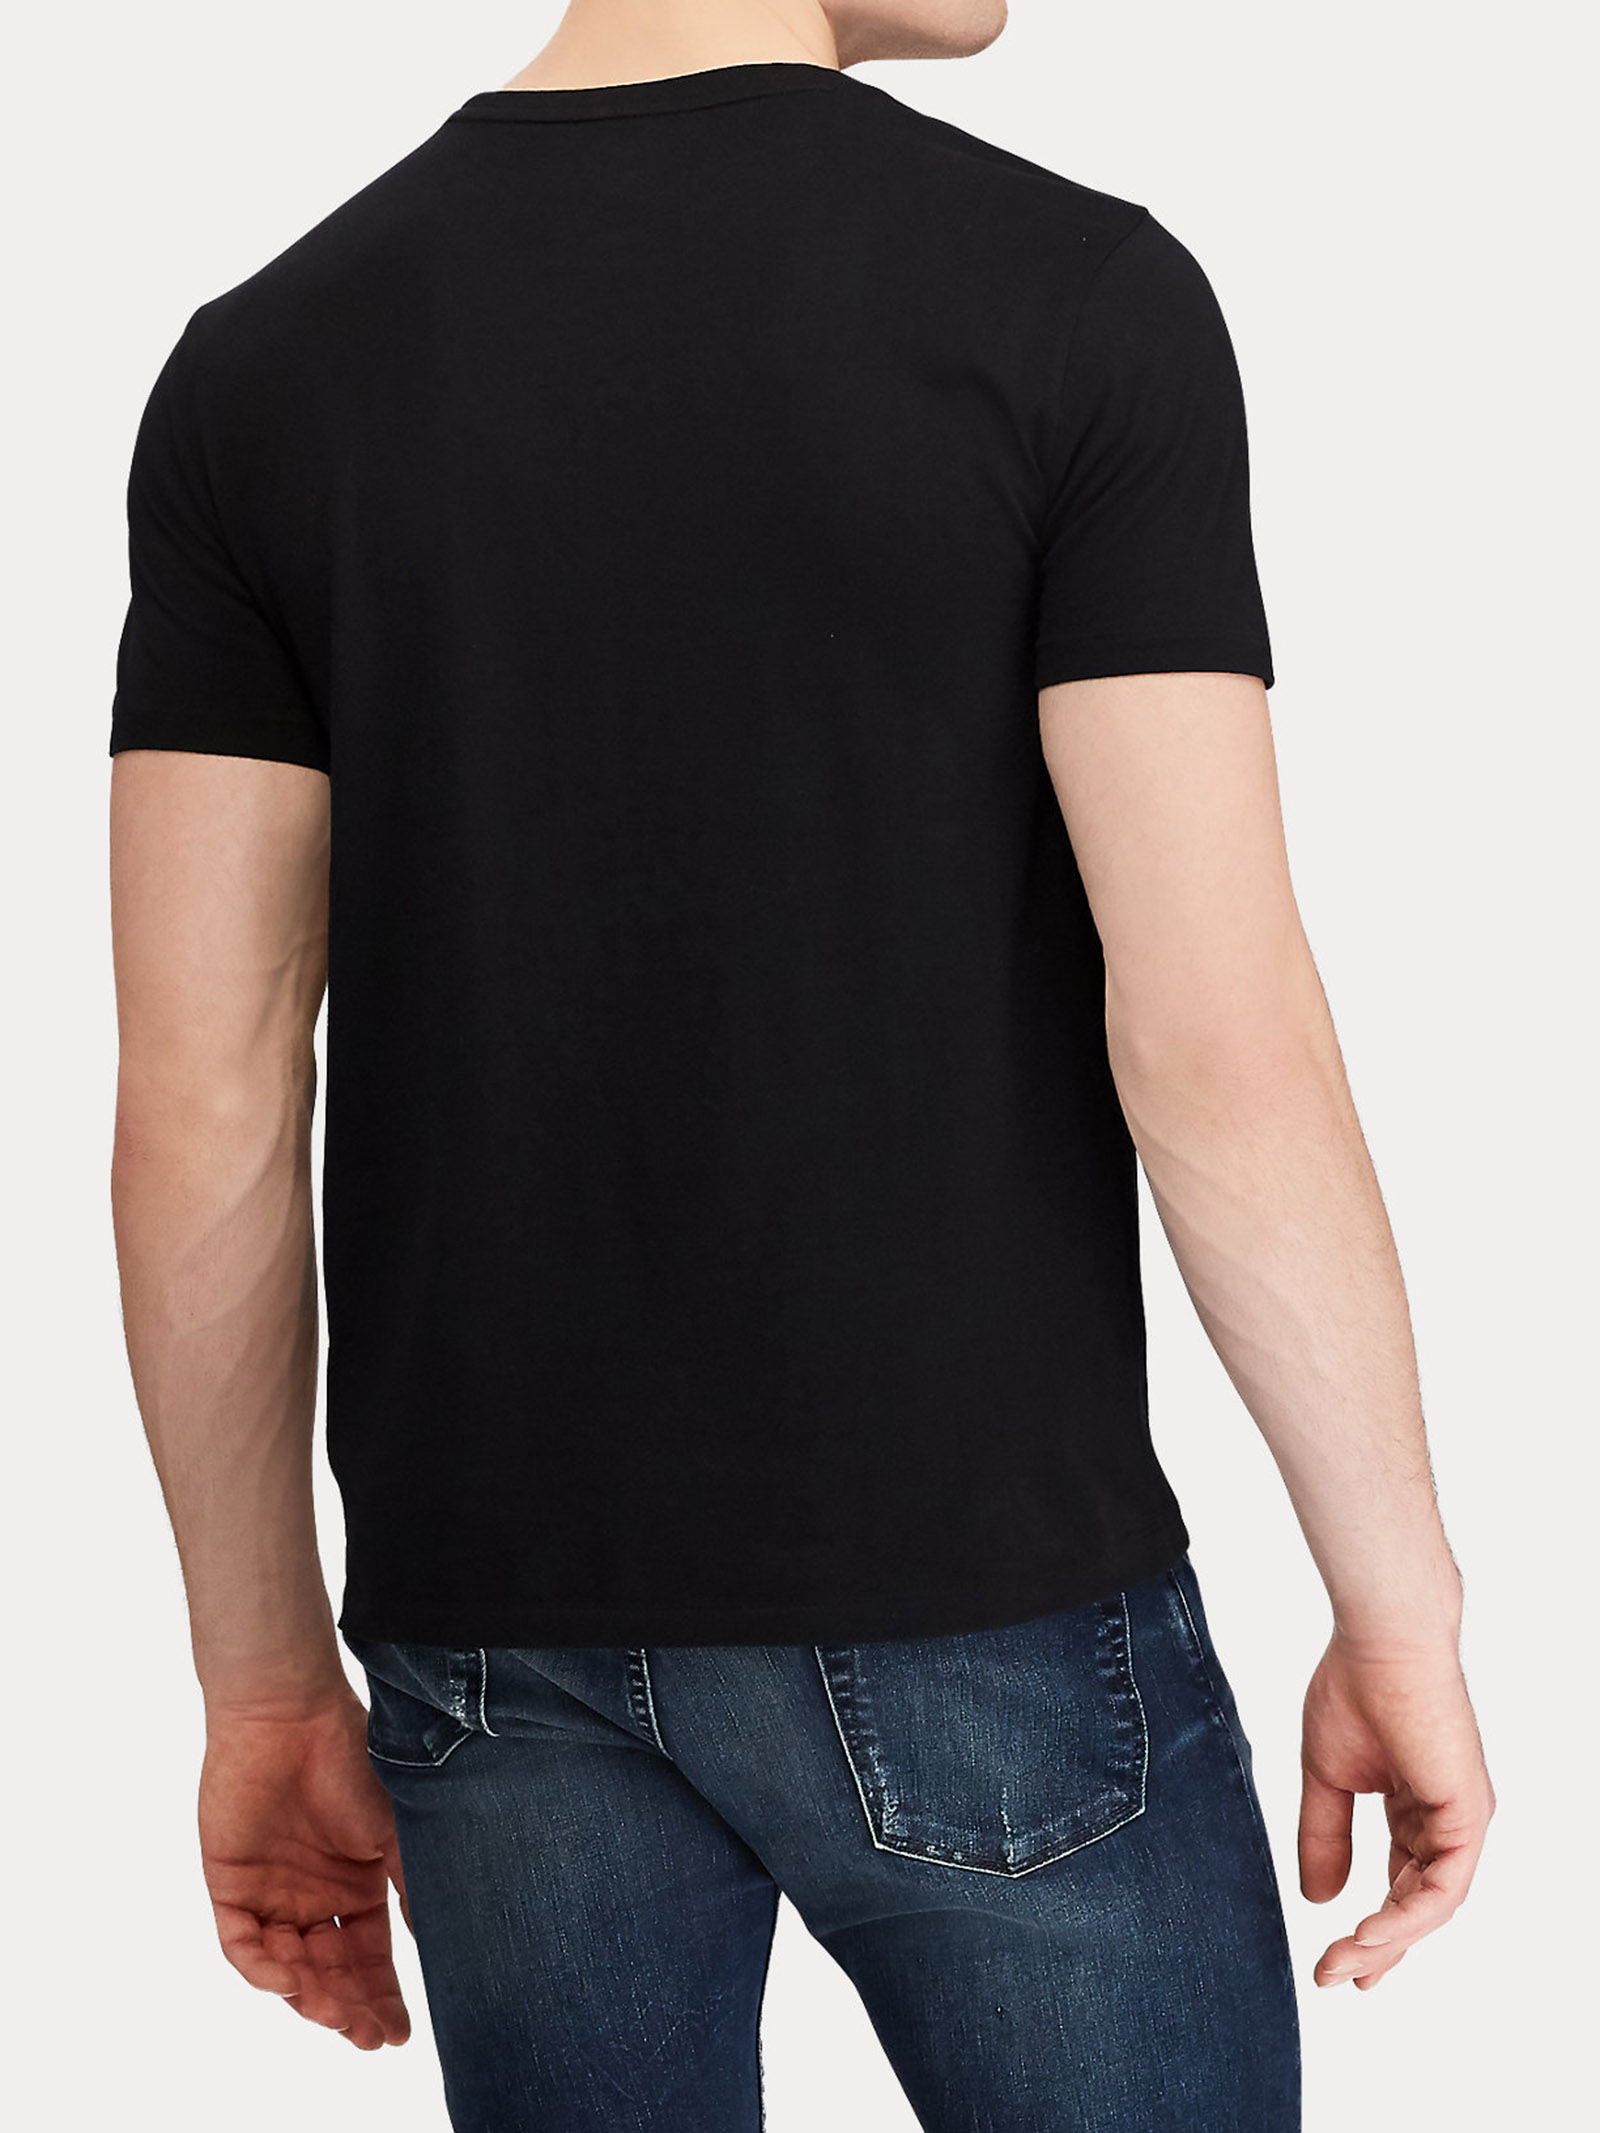 T-shirt girocollo slim fit RALPH LAUREN | T-shirt | 710-680785001